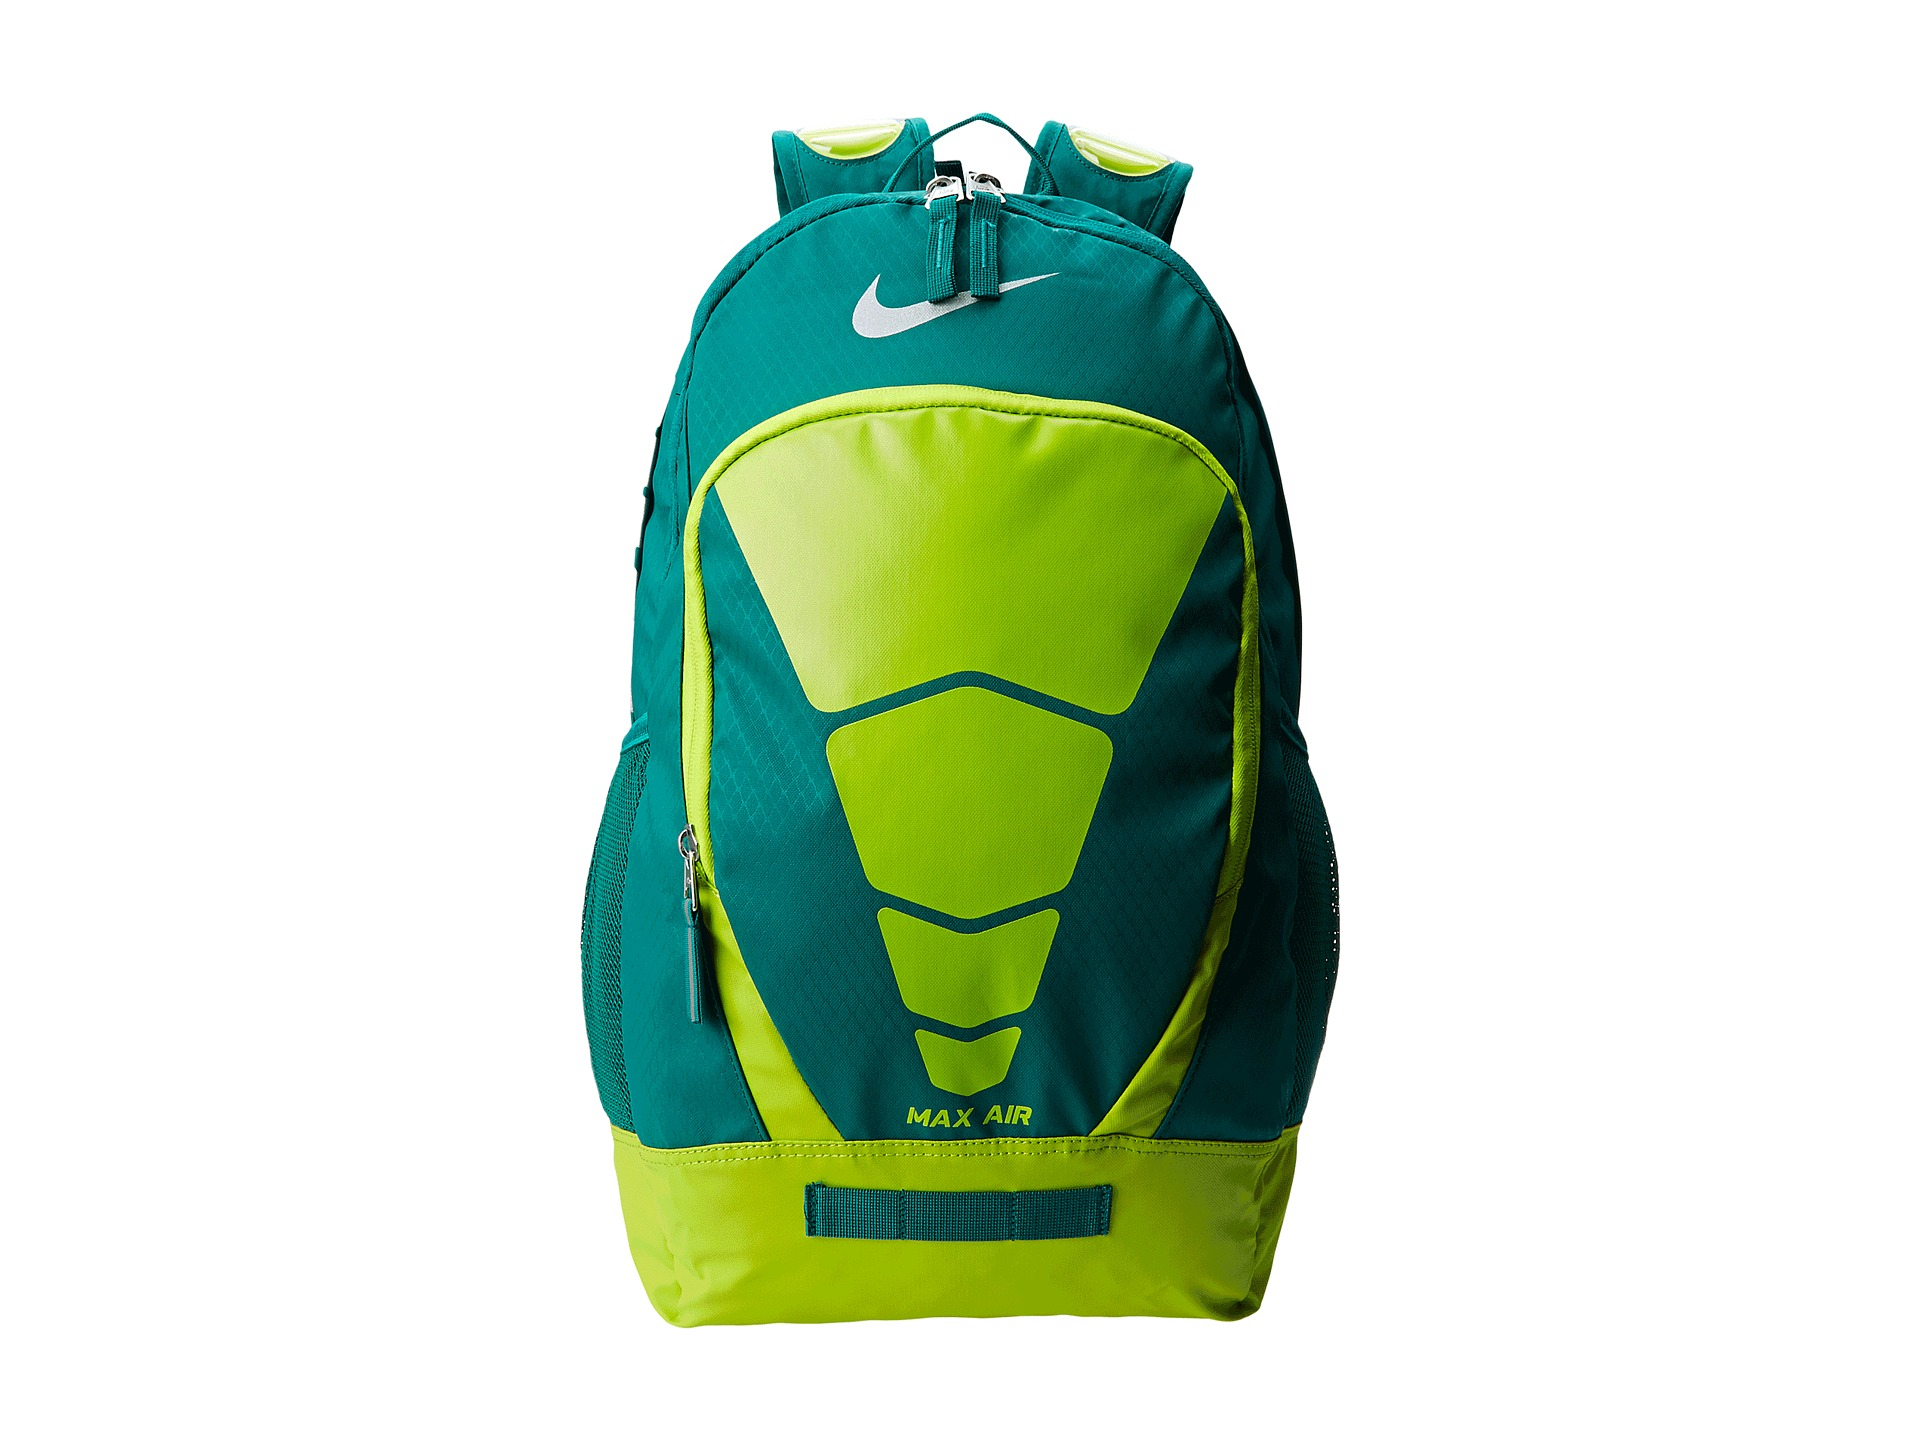 Nike Max Air Vapor Backpack in Green - Lyst